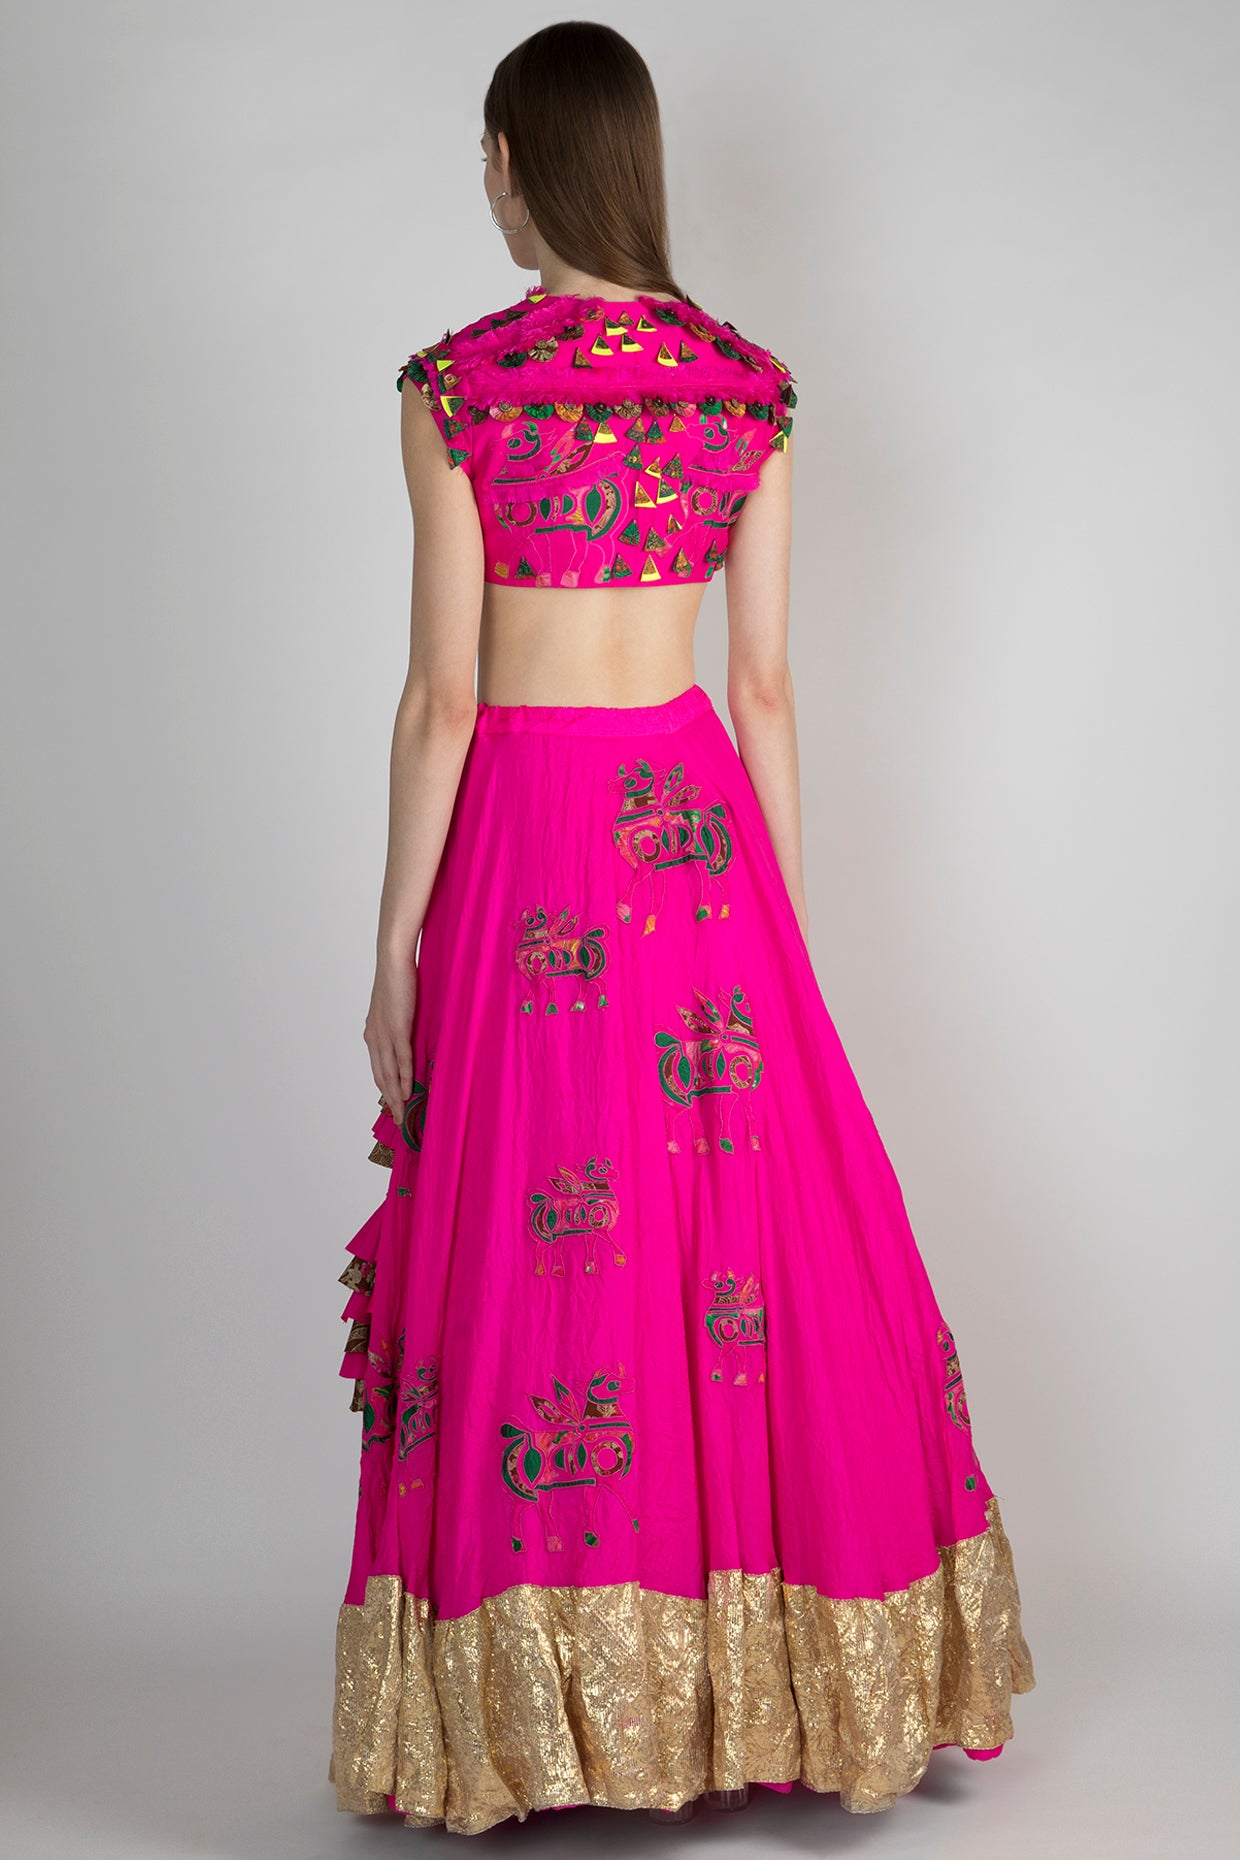 PINK PATCHWORK AND FRAY EMBELLISHED BLOUSE AND CRUSH PINK FOAL APPLIQUE LEHENGA WITH PATCHWORK DUPATTA - The Grand Trunk